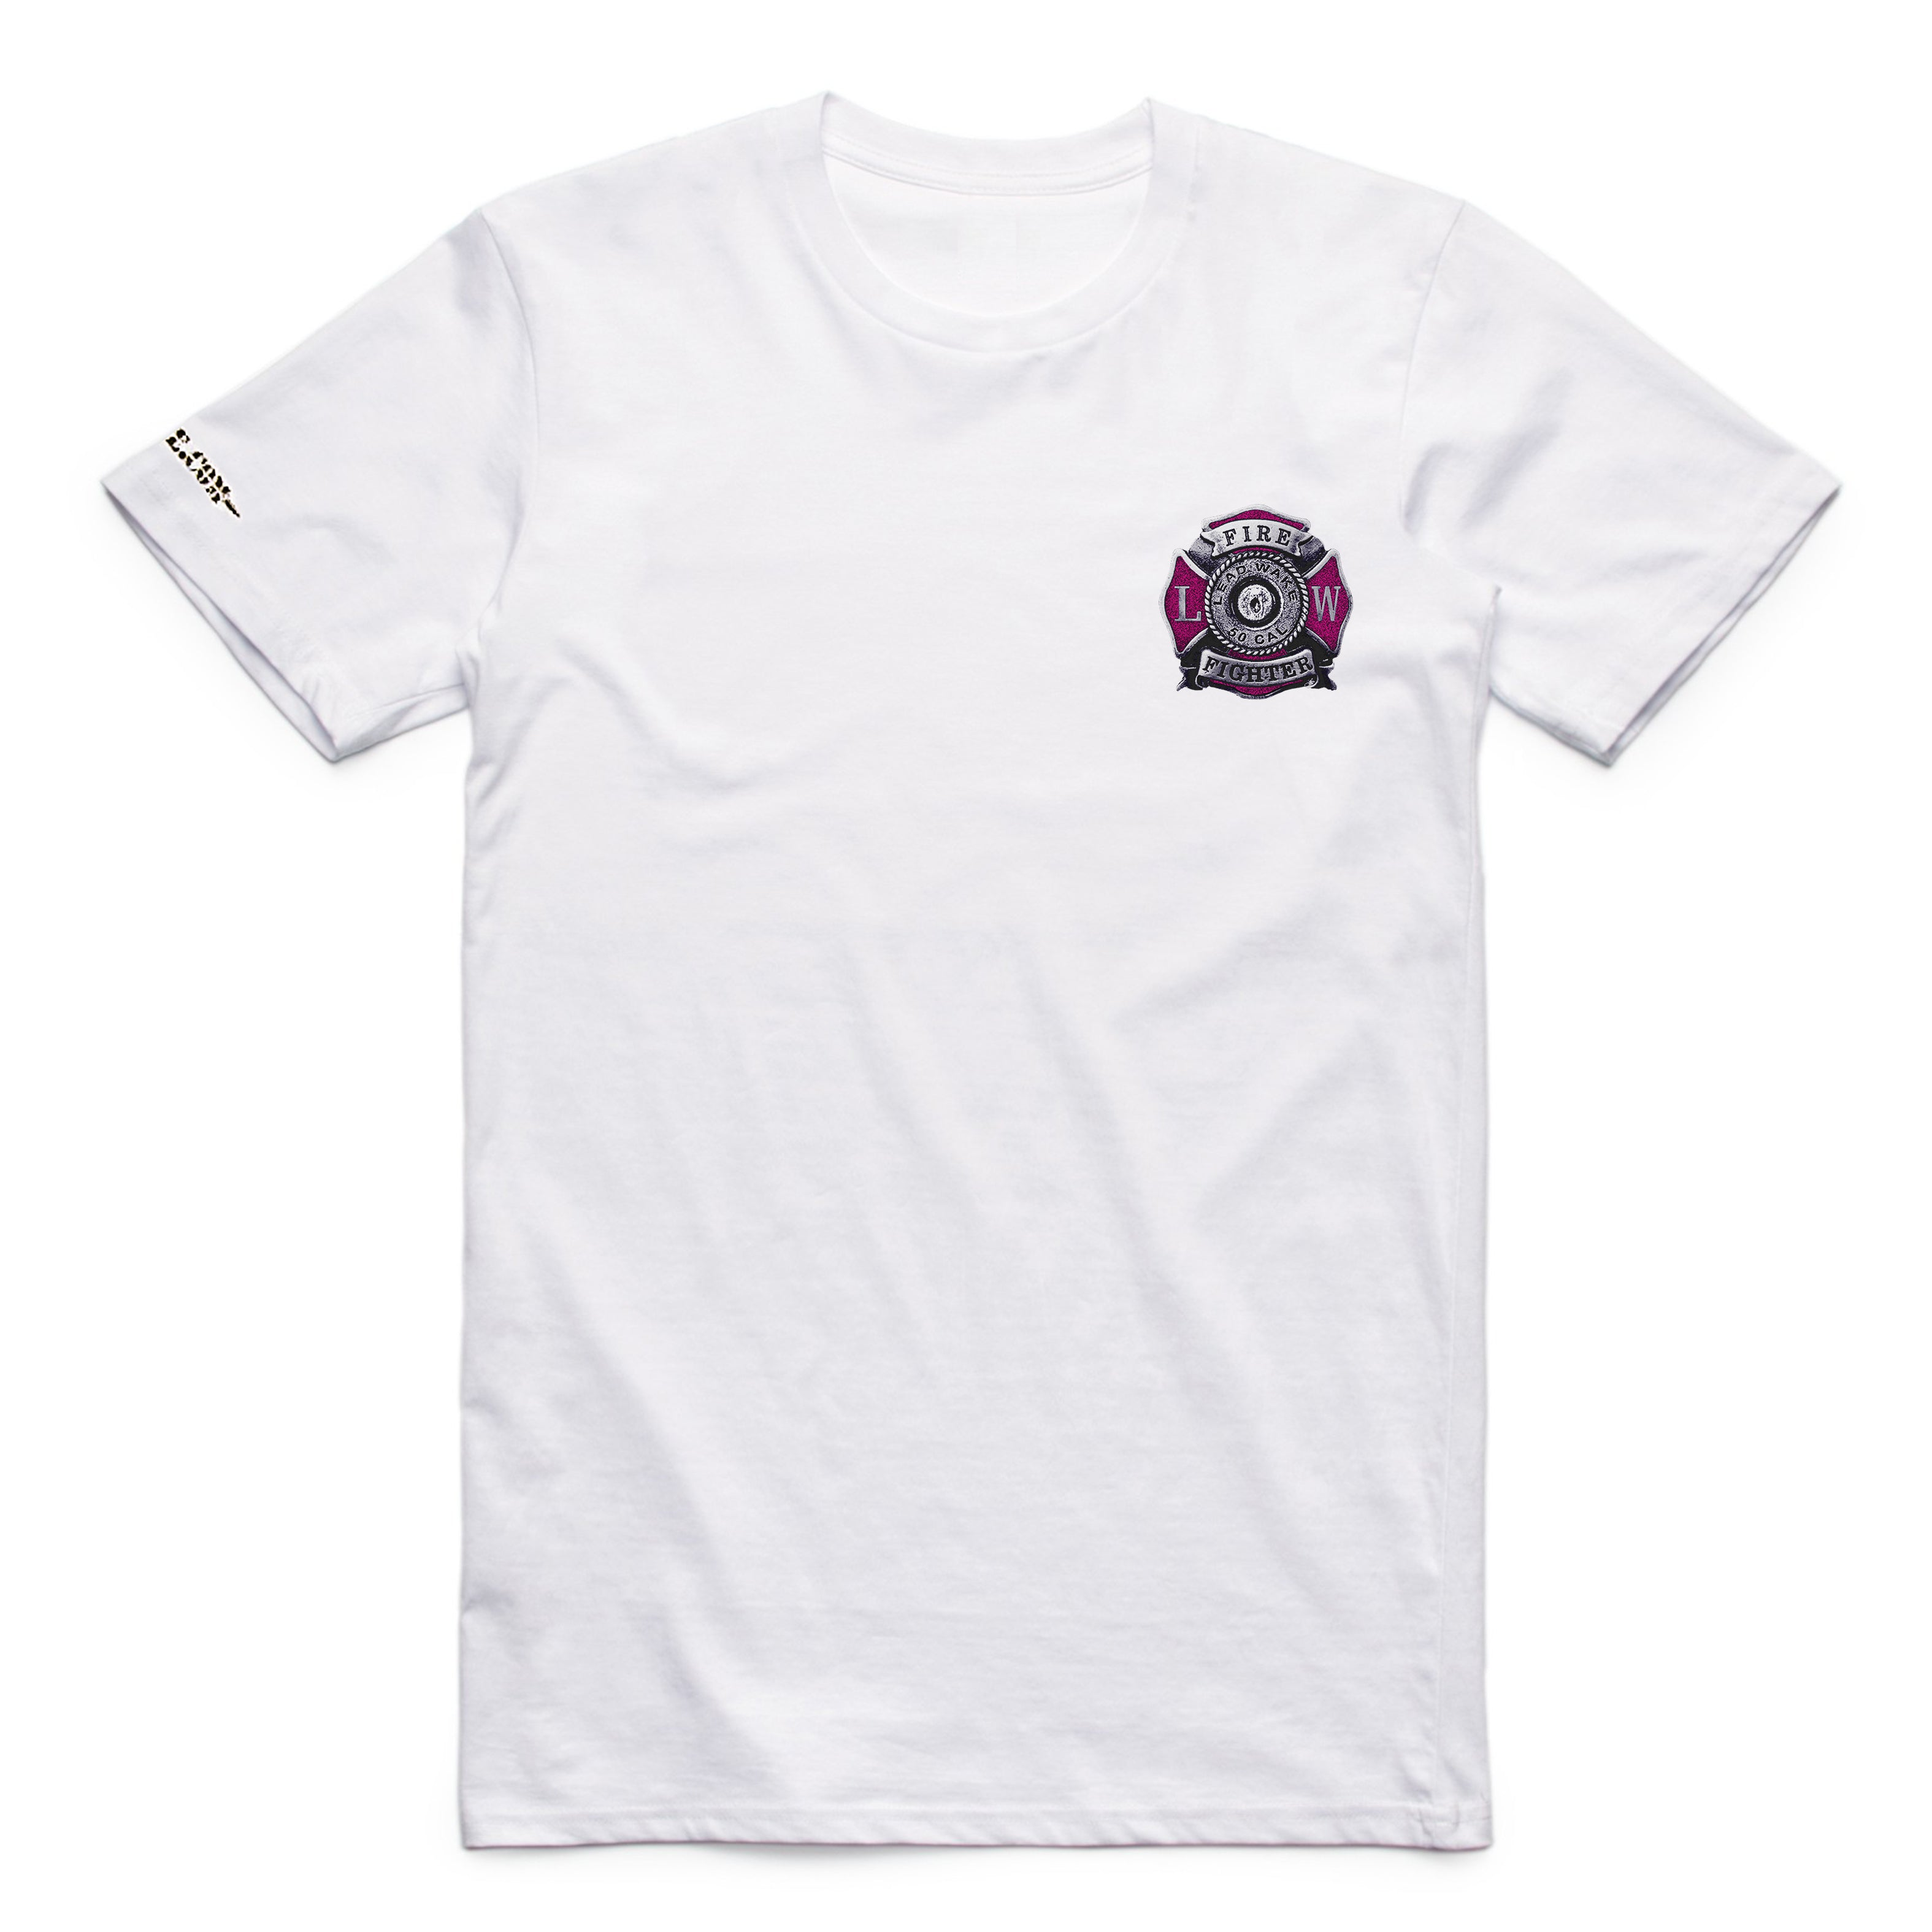 Men's Breast Cancer Awareness<br> T-Shirt in White